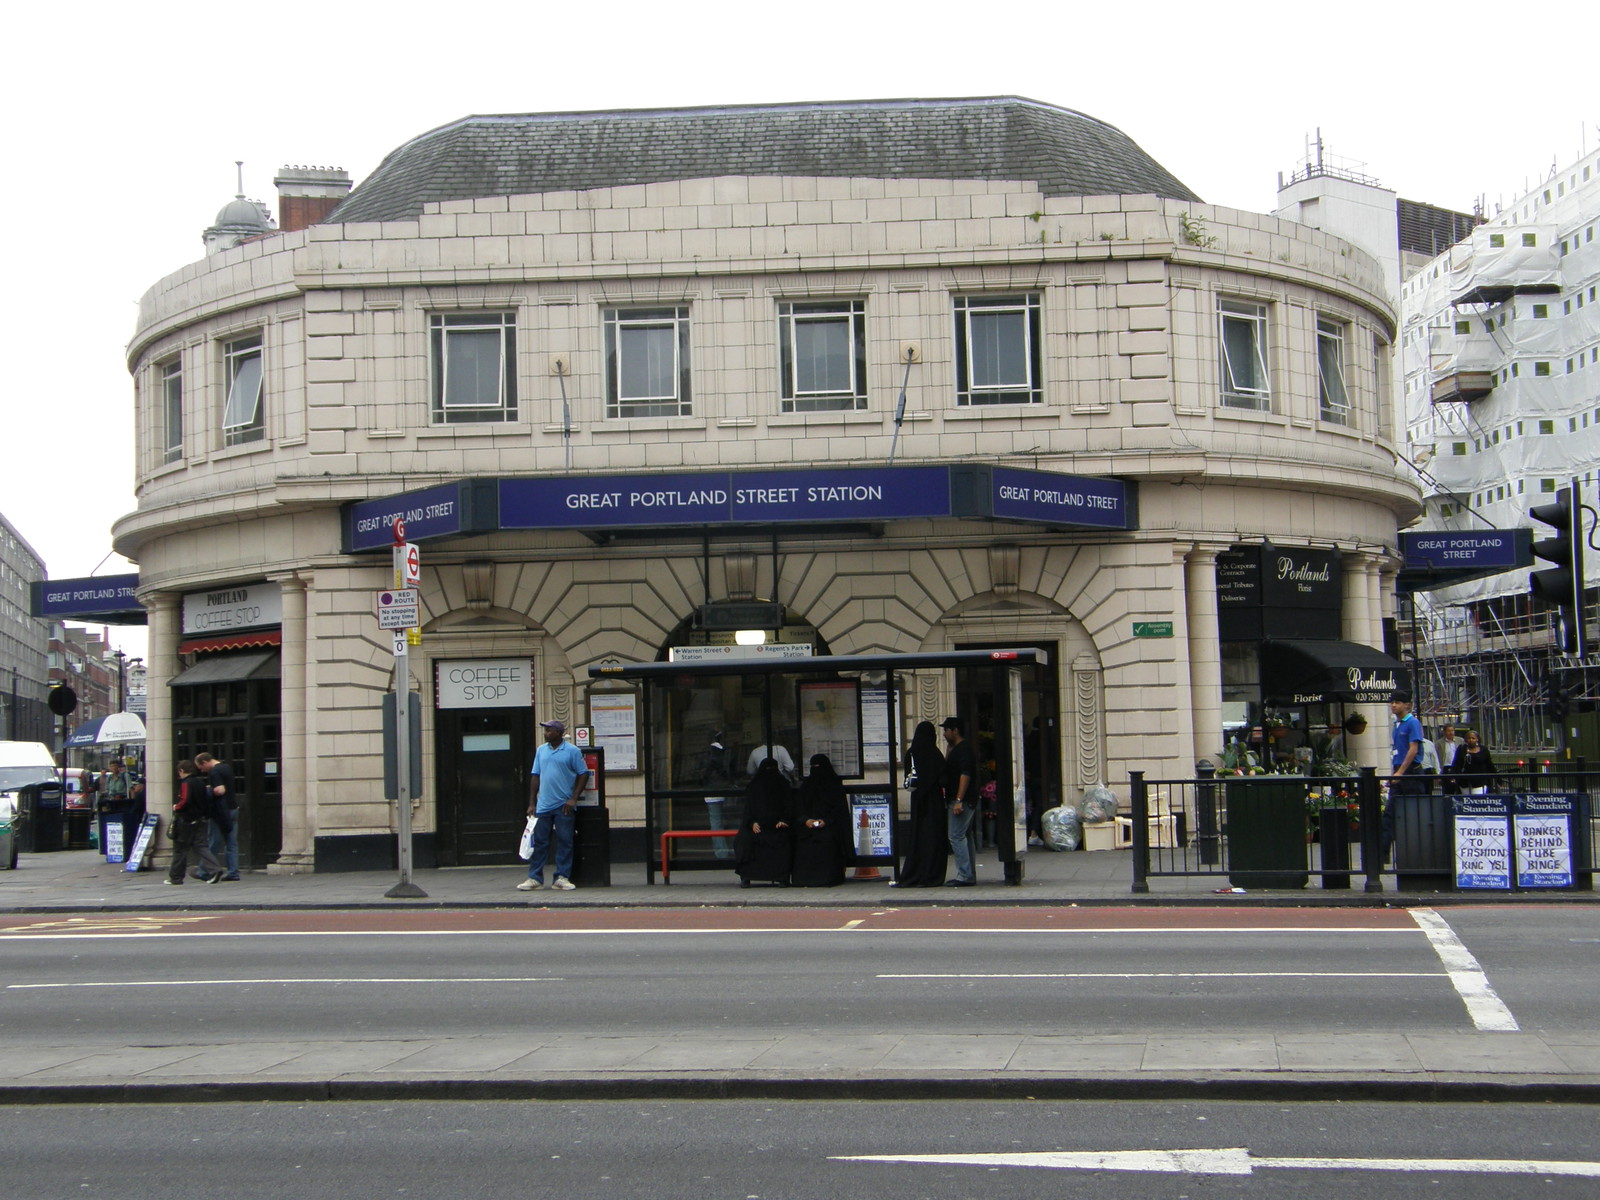 Great Portland Street station